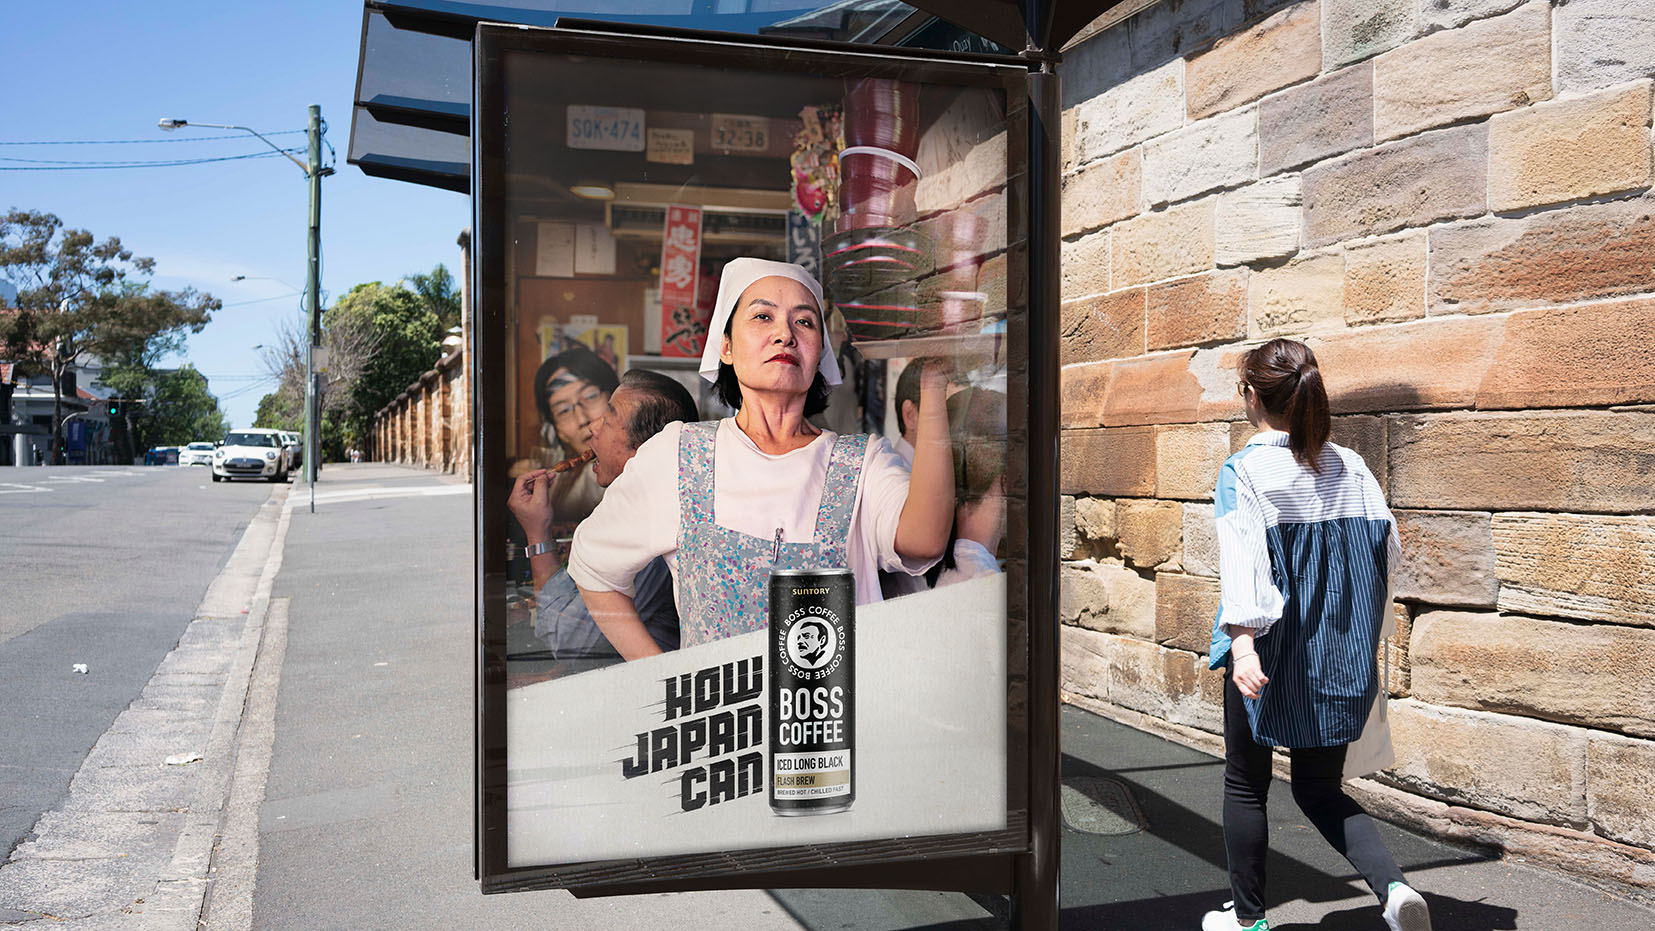 BOSS Coffee Launches in Australia With 'How Japan Can' Ads